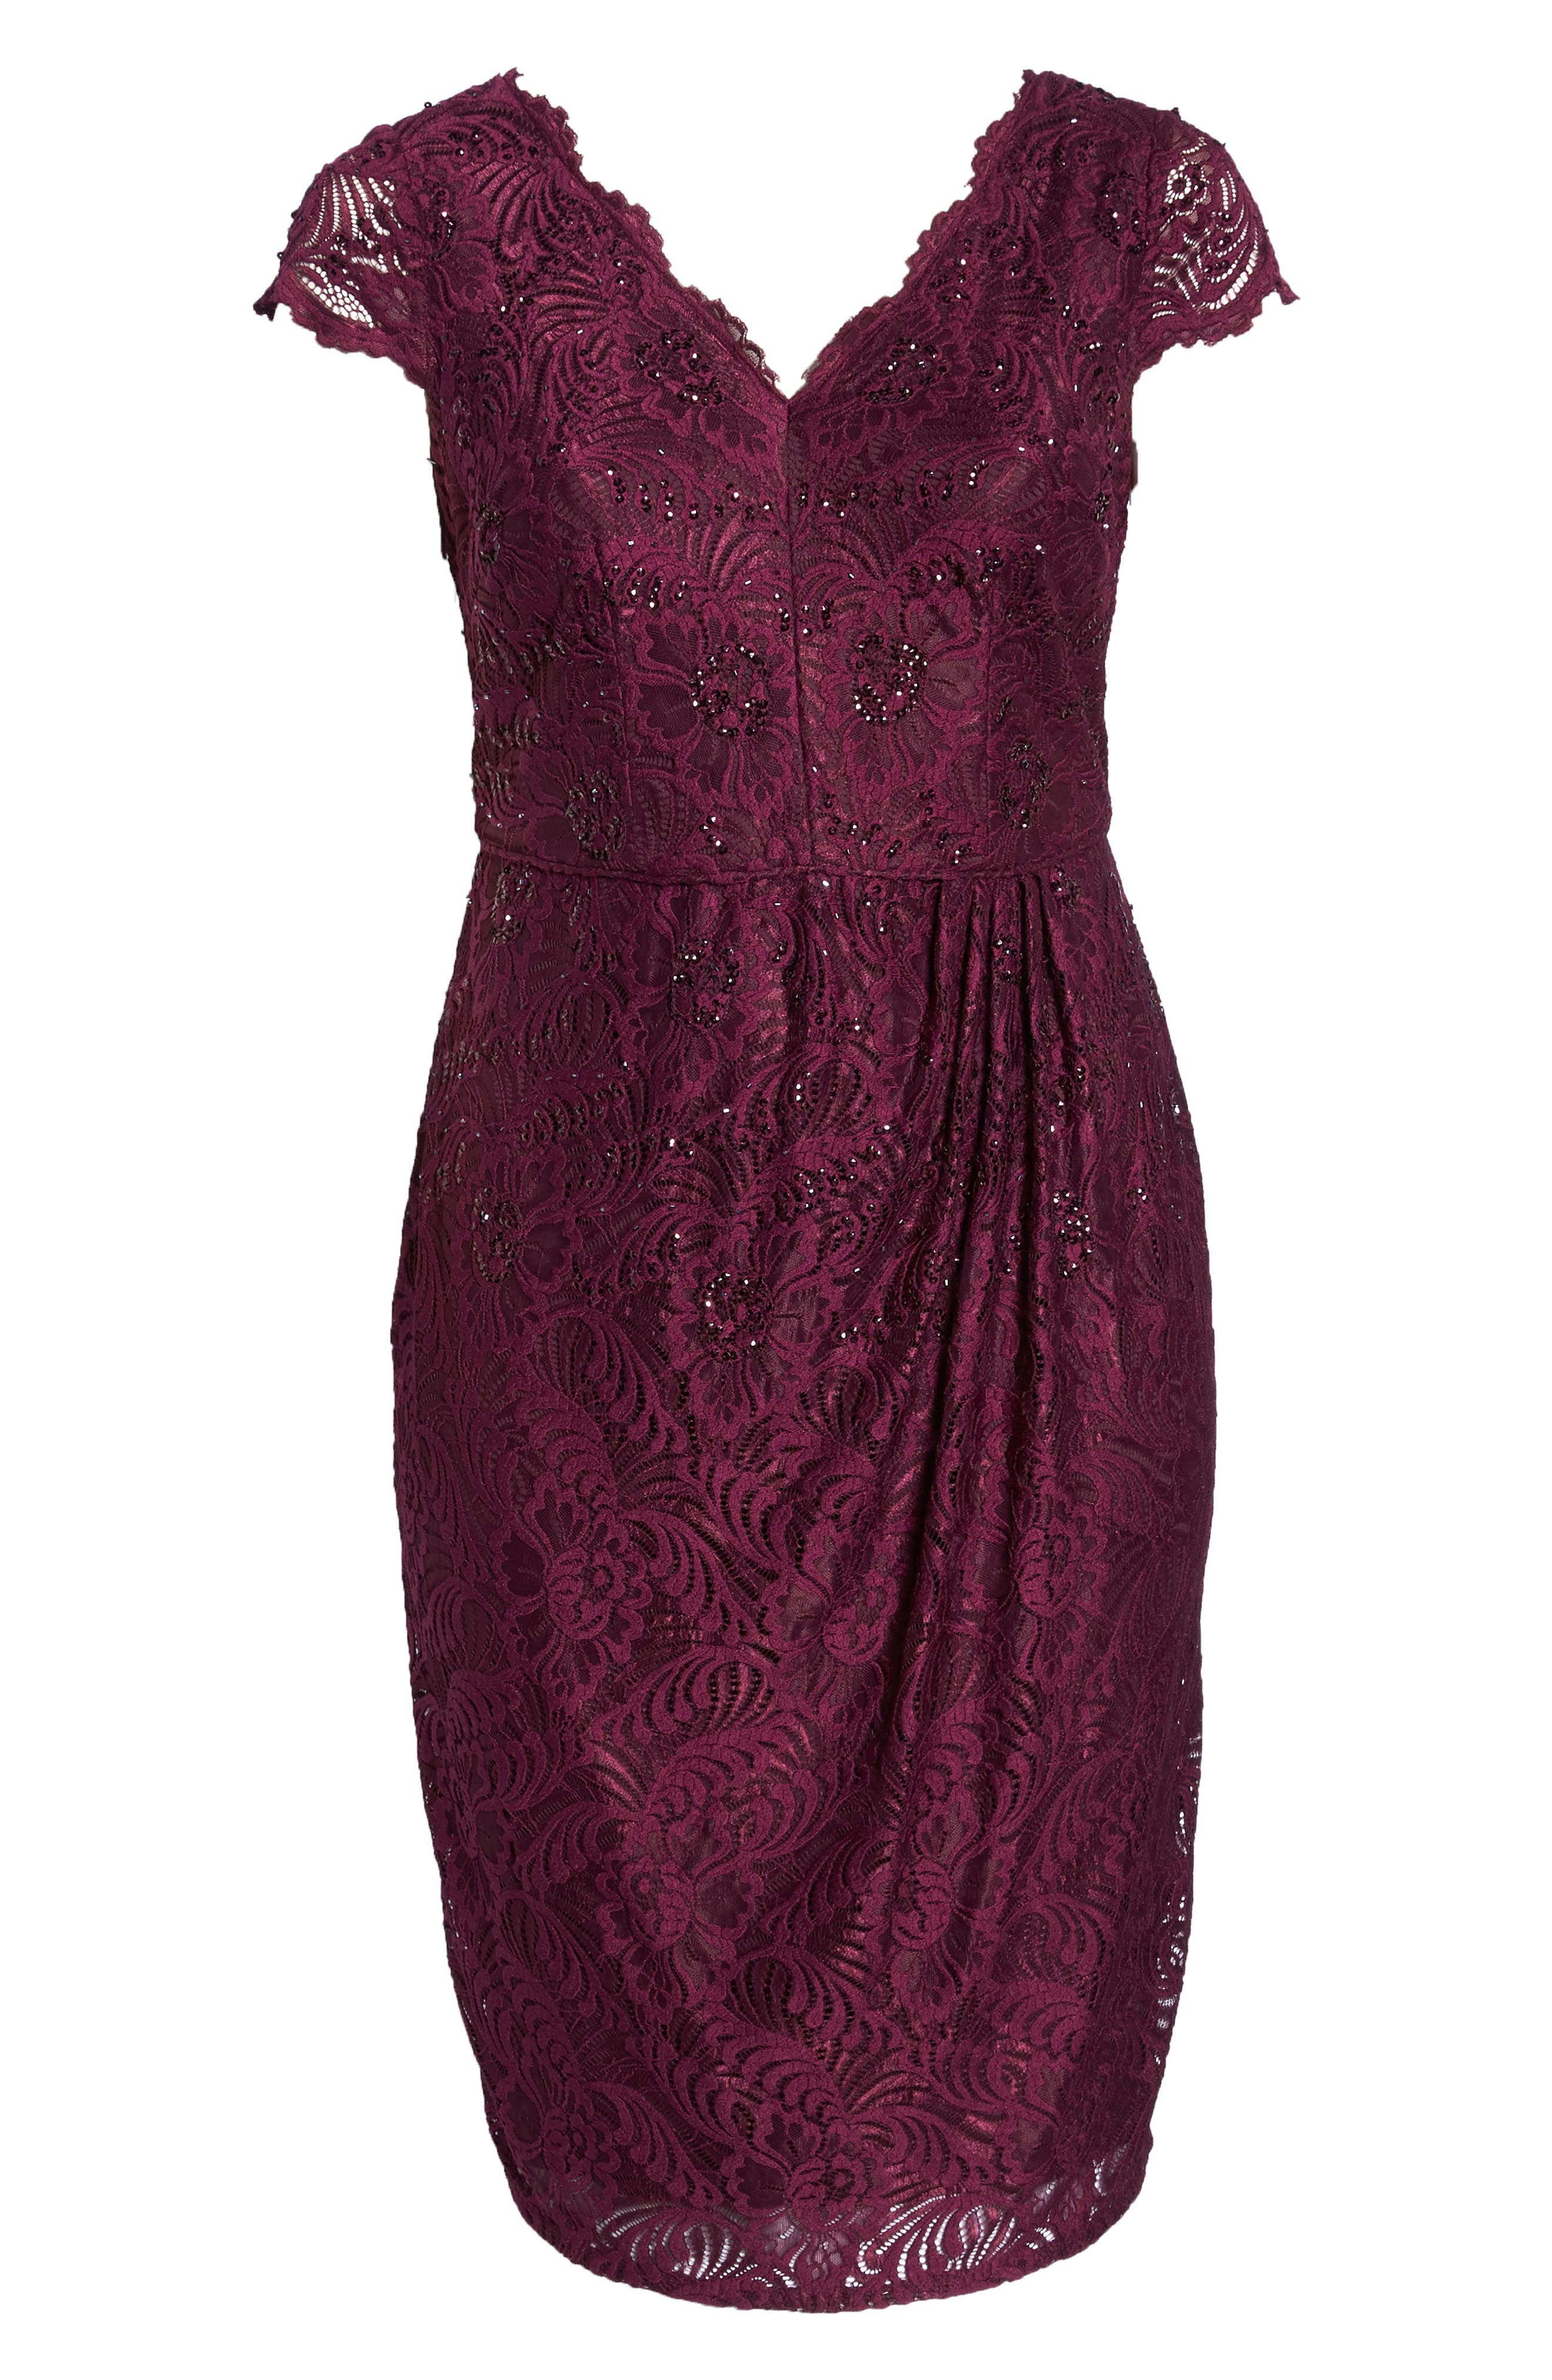 Embellished Stretch Lace Sheath Dress,                             Alternate thumbnail 6, color,                             606